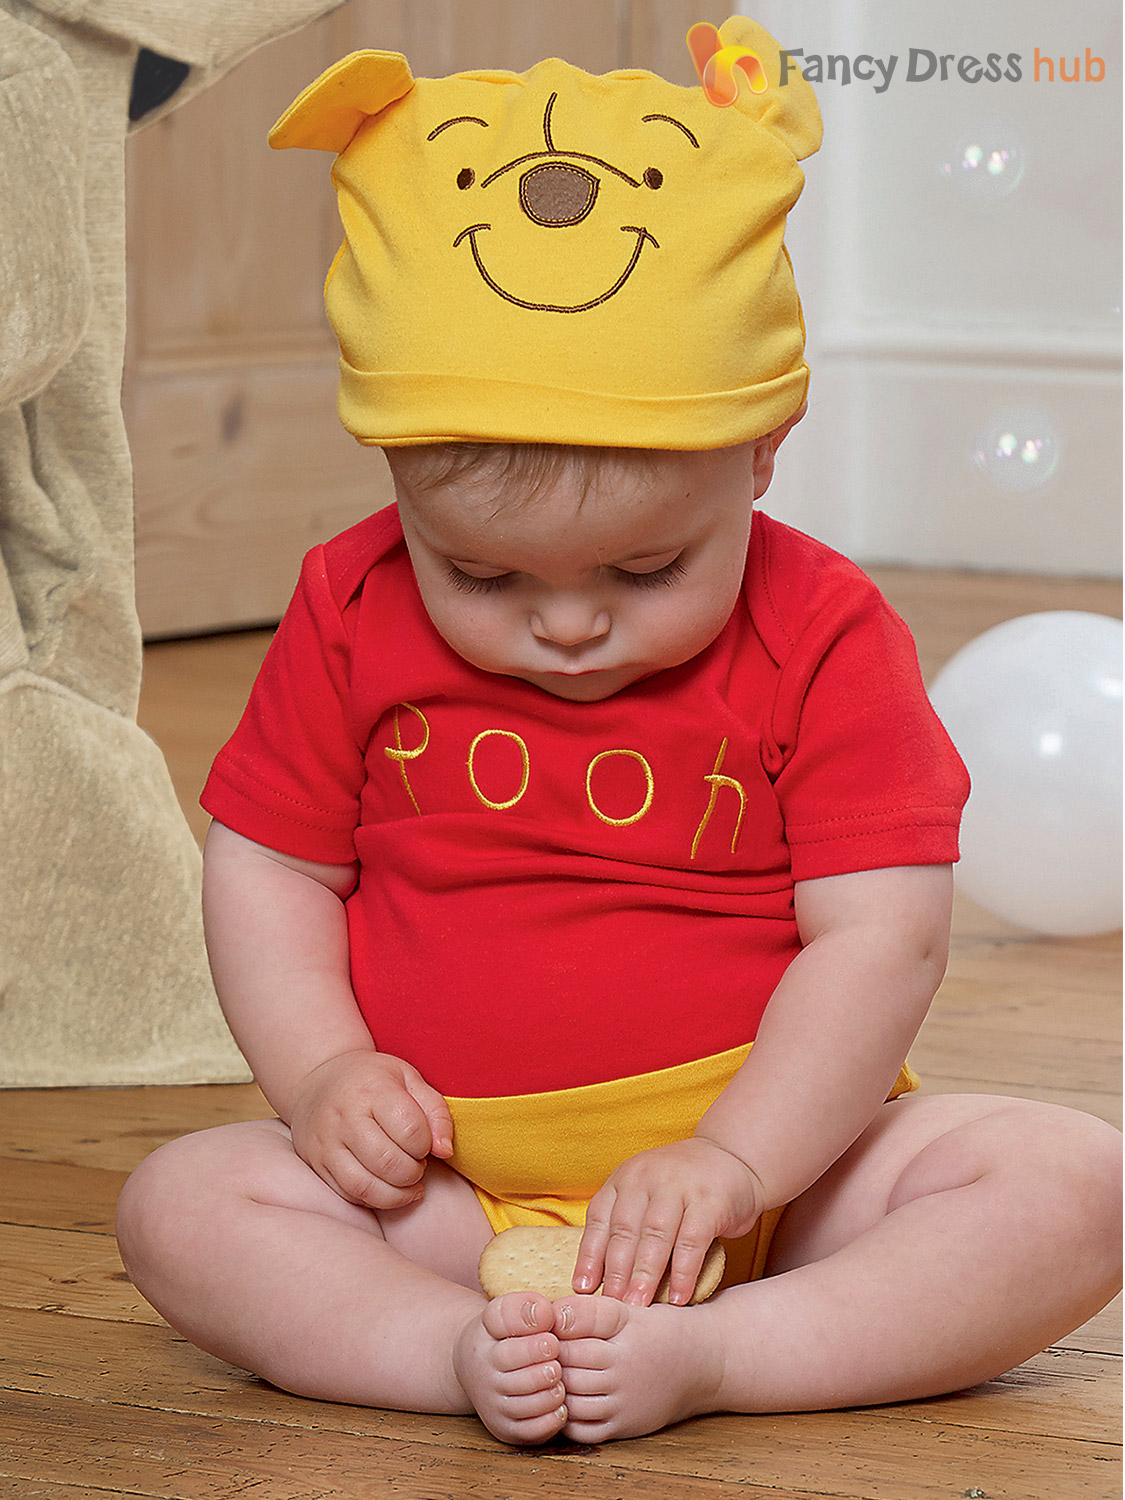 Disney-Baby-Winnie-the-Pooh-Bodysuit-Hood-Outfit-Toddler-Fancy-Dress-Costume thumbnail 8